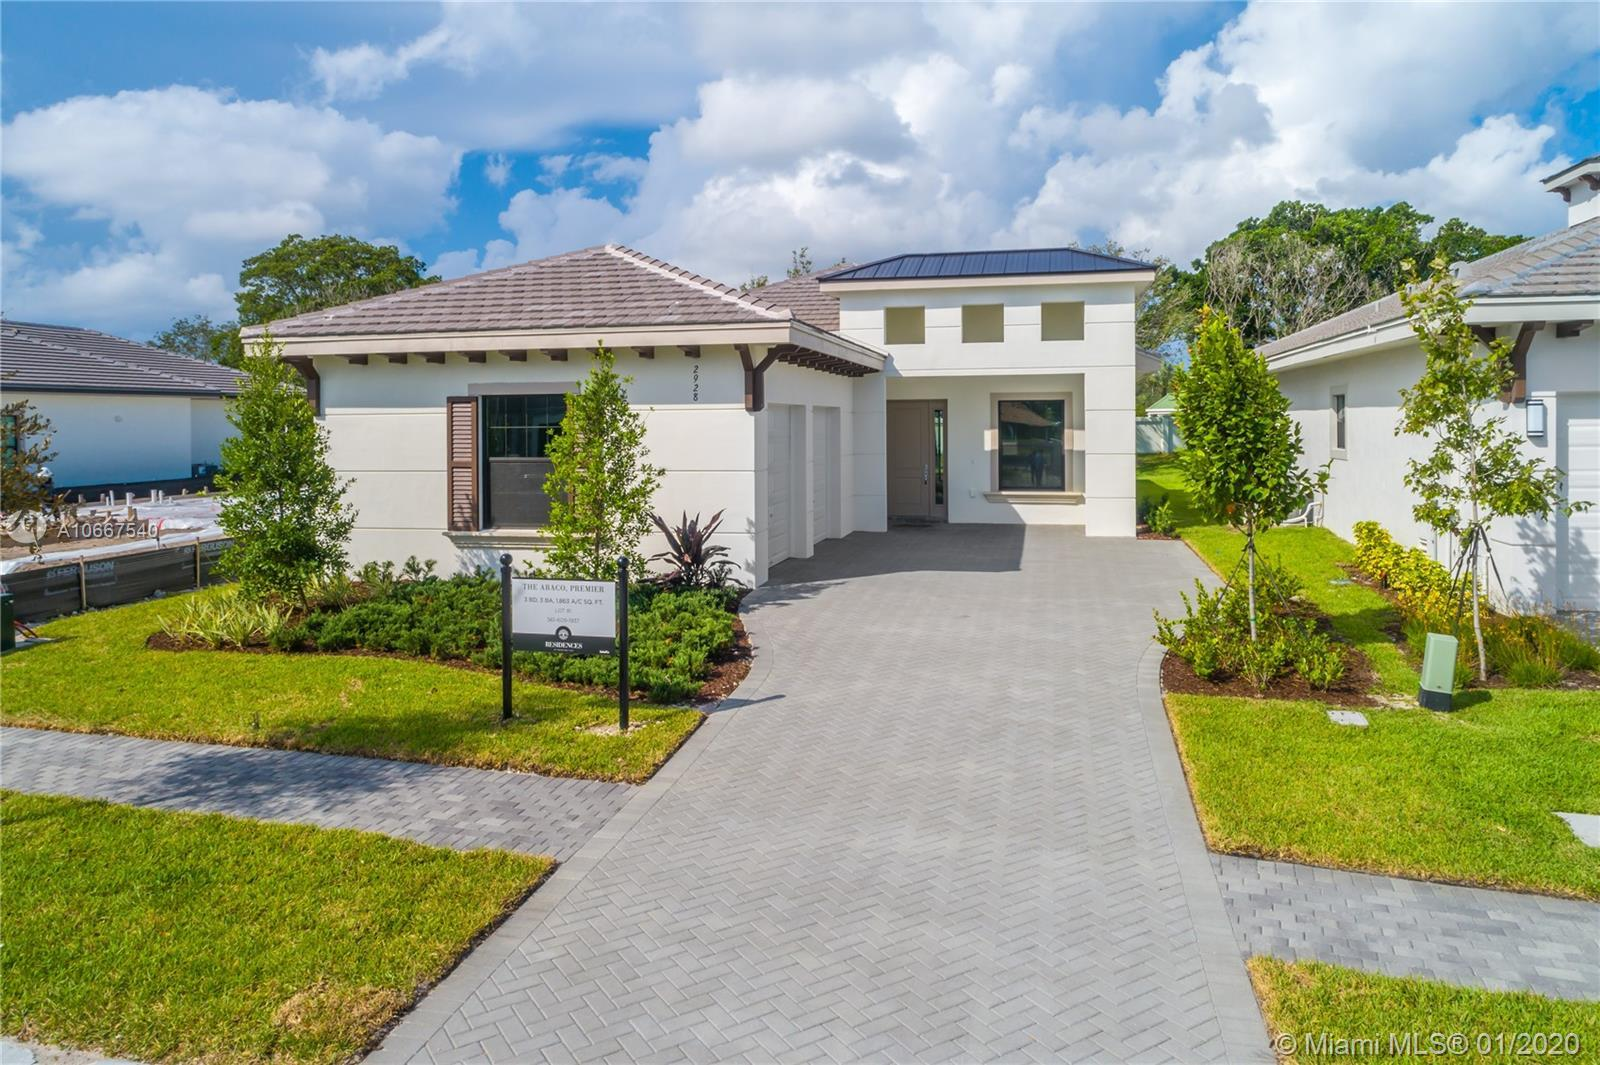 IMMEDIATE OCCUPANCY & MOVE-IN READY HOME!!